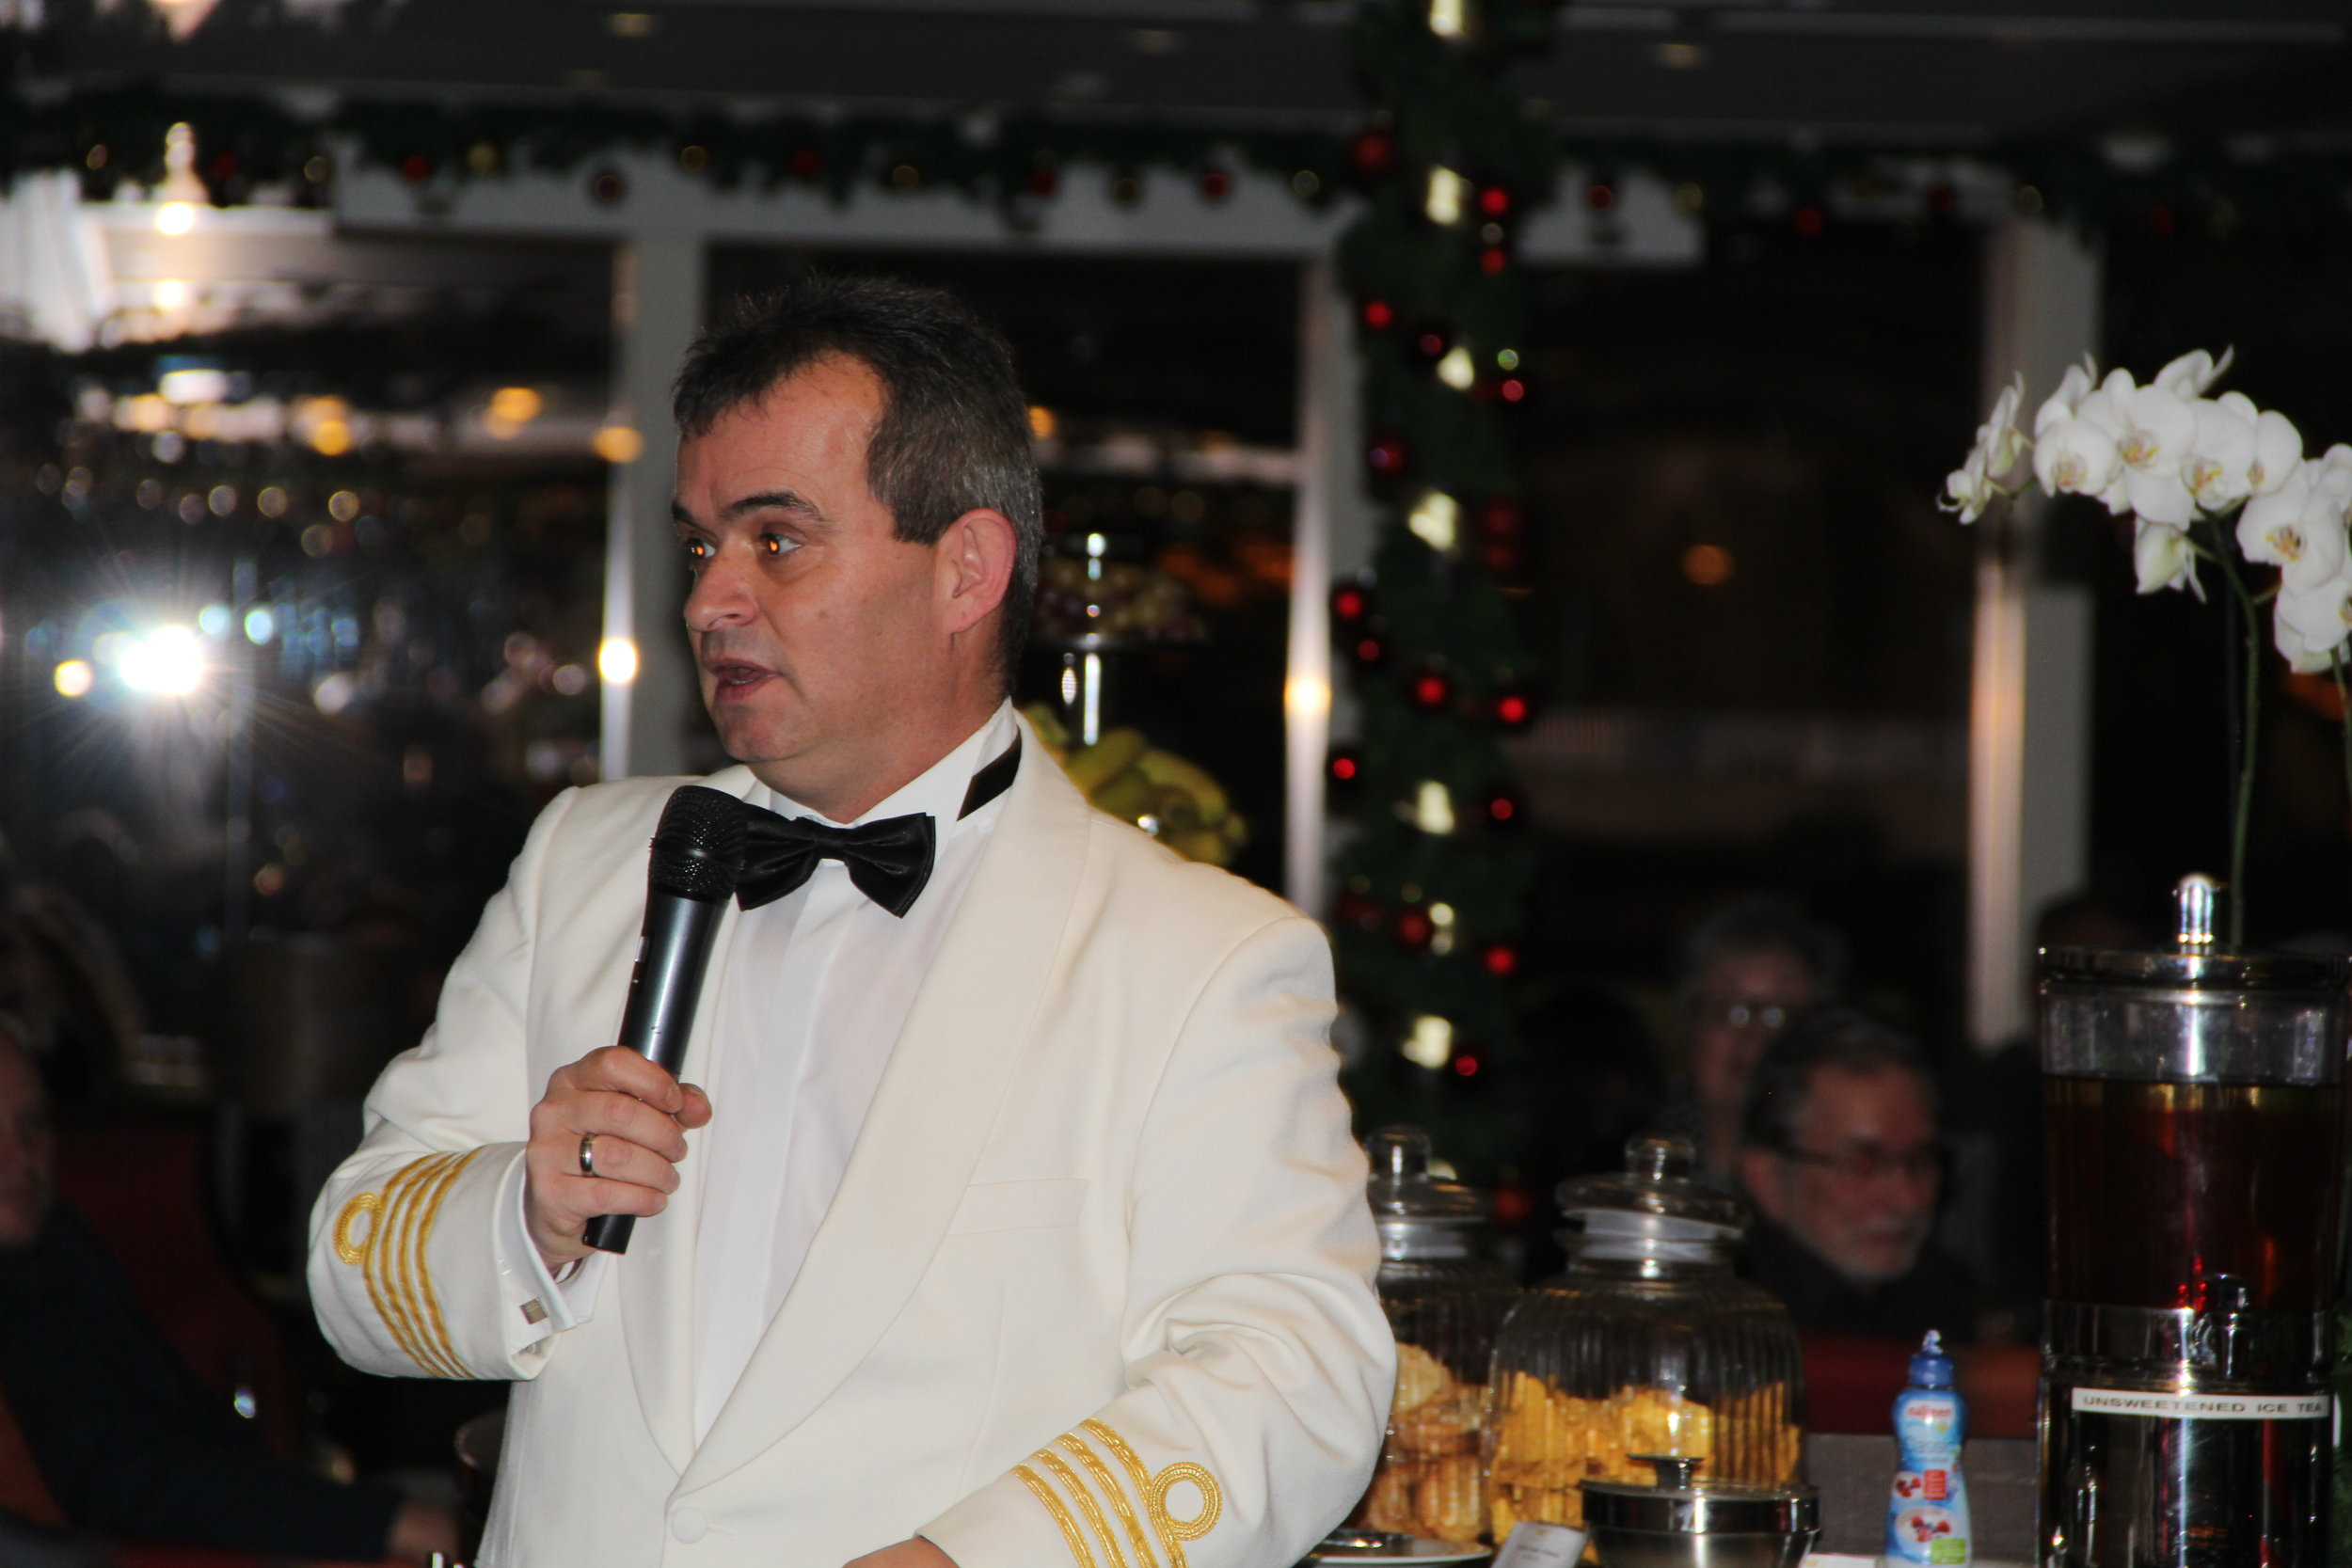 AmaWaterways Captain Giving Safety Briefing